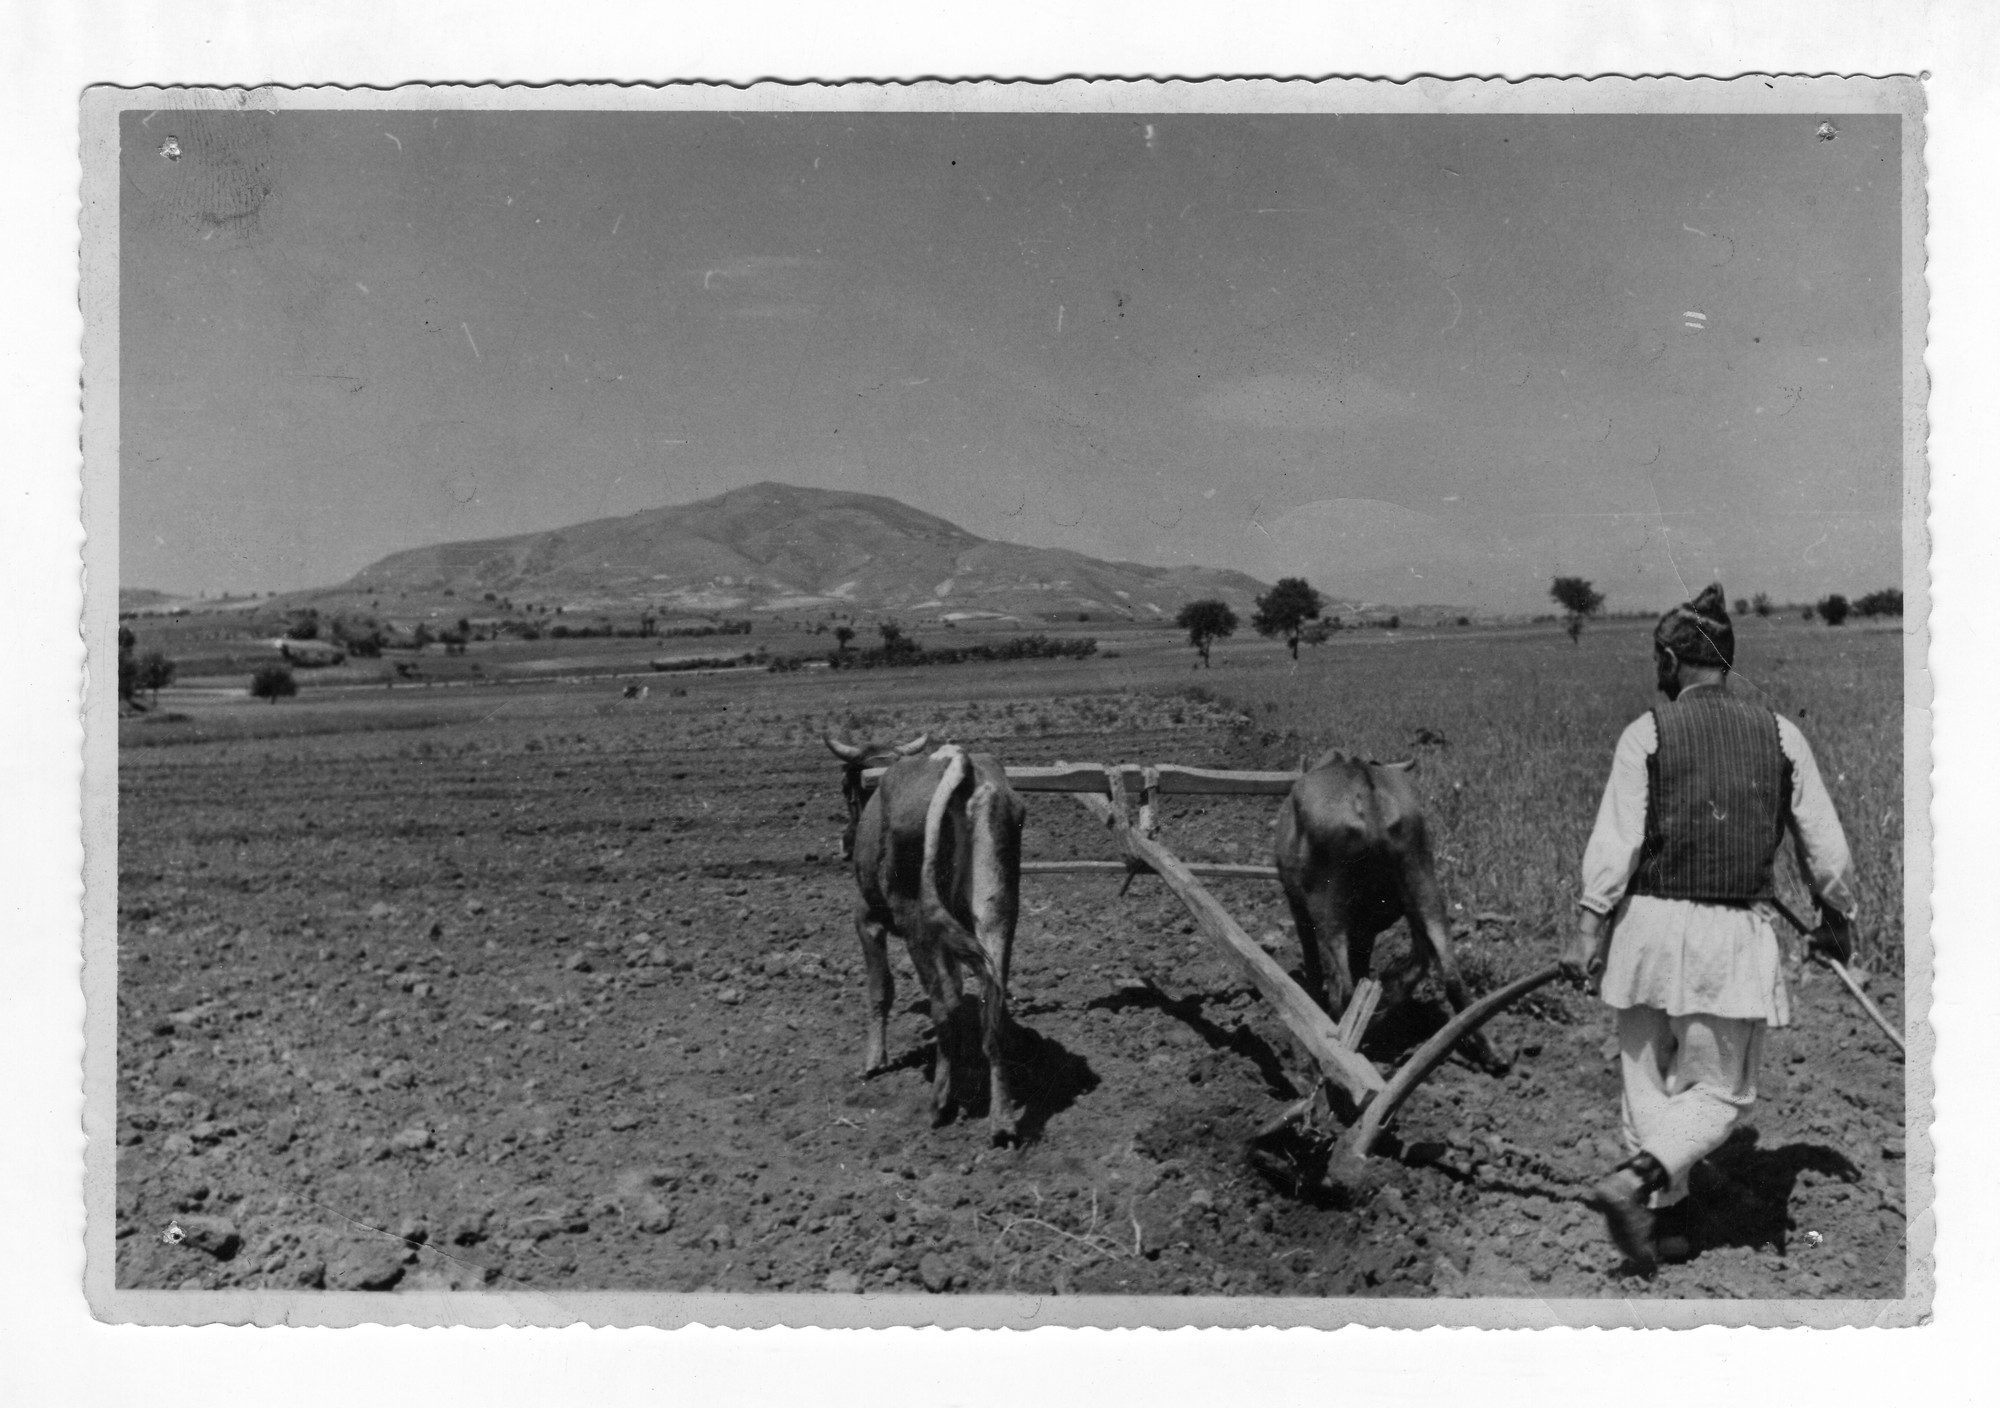 Ploughing, © Institute for Ethnology and Folklore Studies with Ethnographic Museum - AEIM, BAS